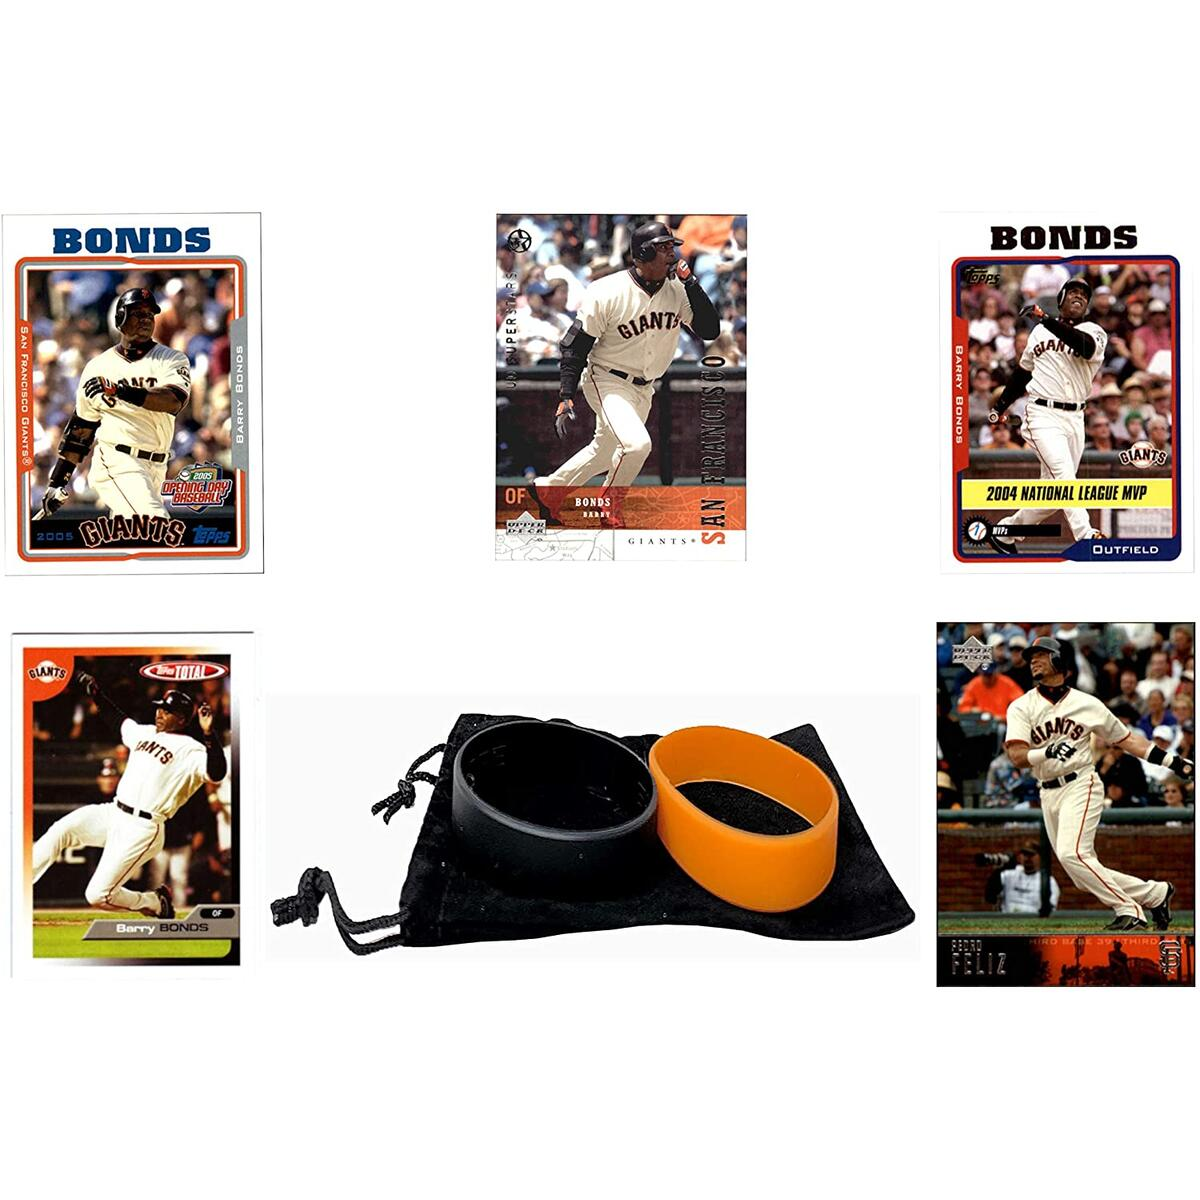 Barry Bonds Baseball Cards (5) ASSORTED San Francisco Giants Trading Card and Wristbands Gift Bundle